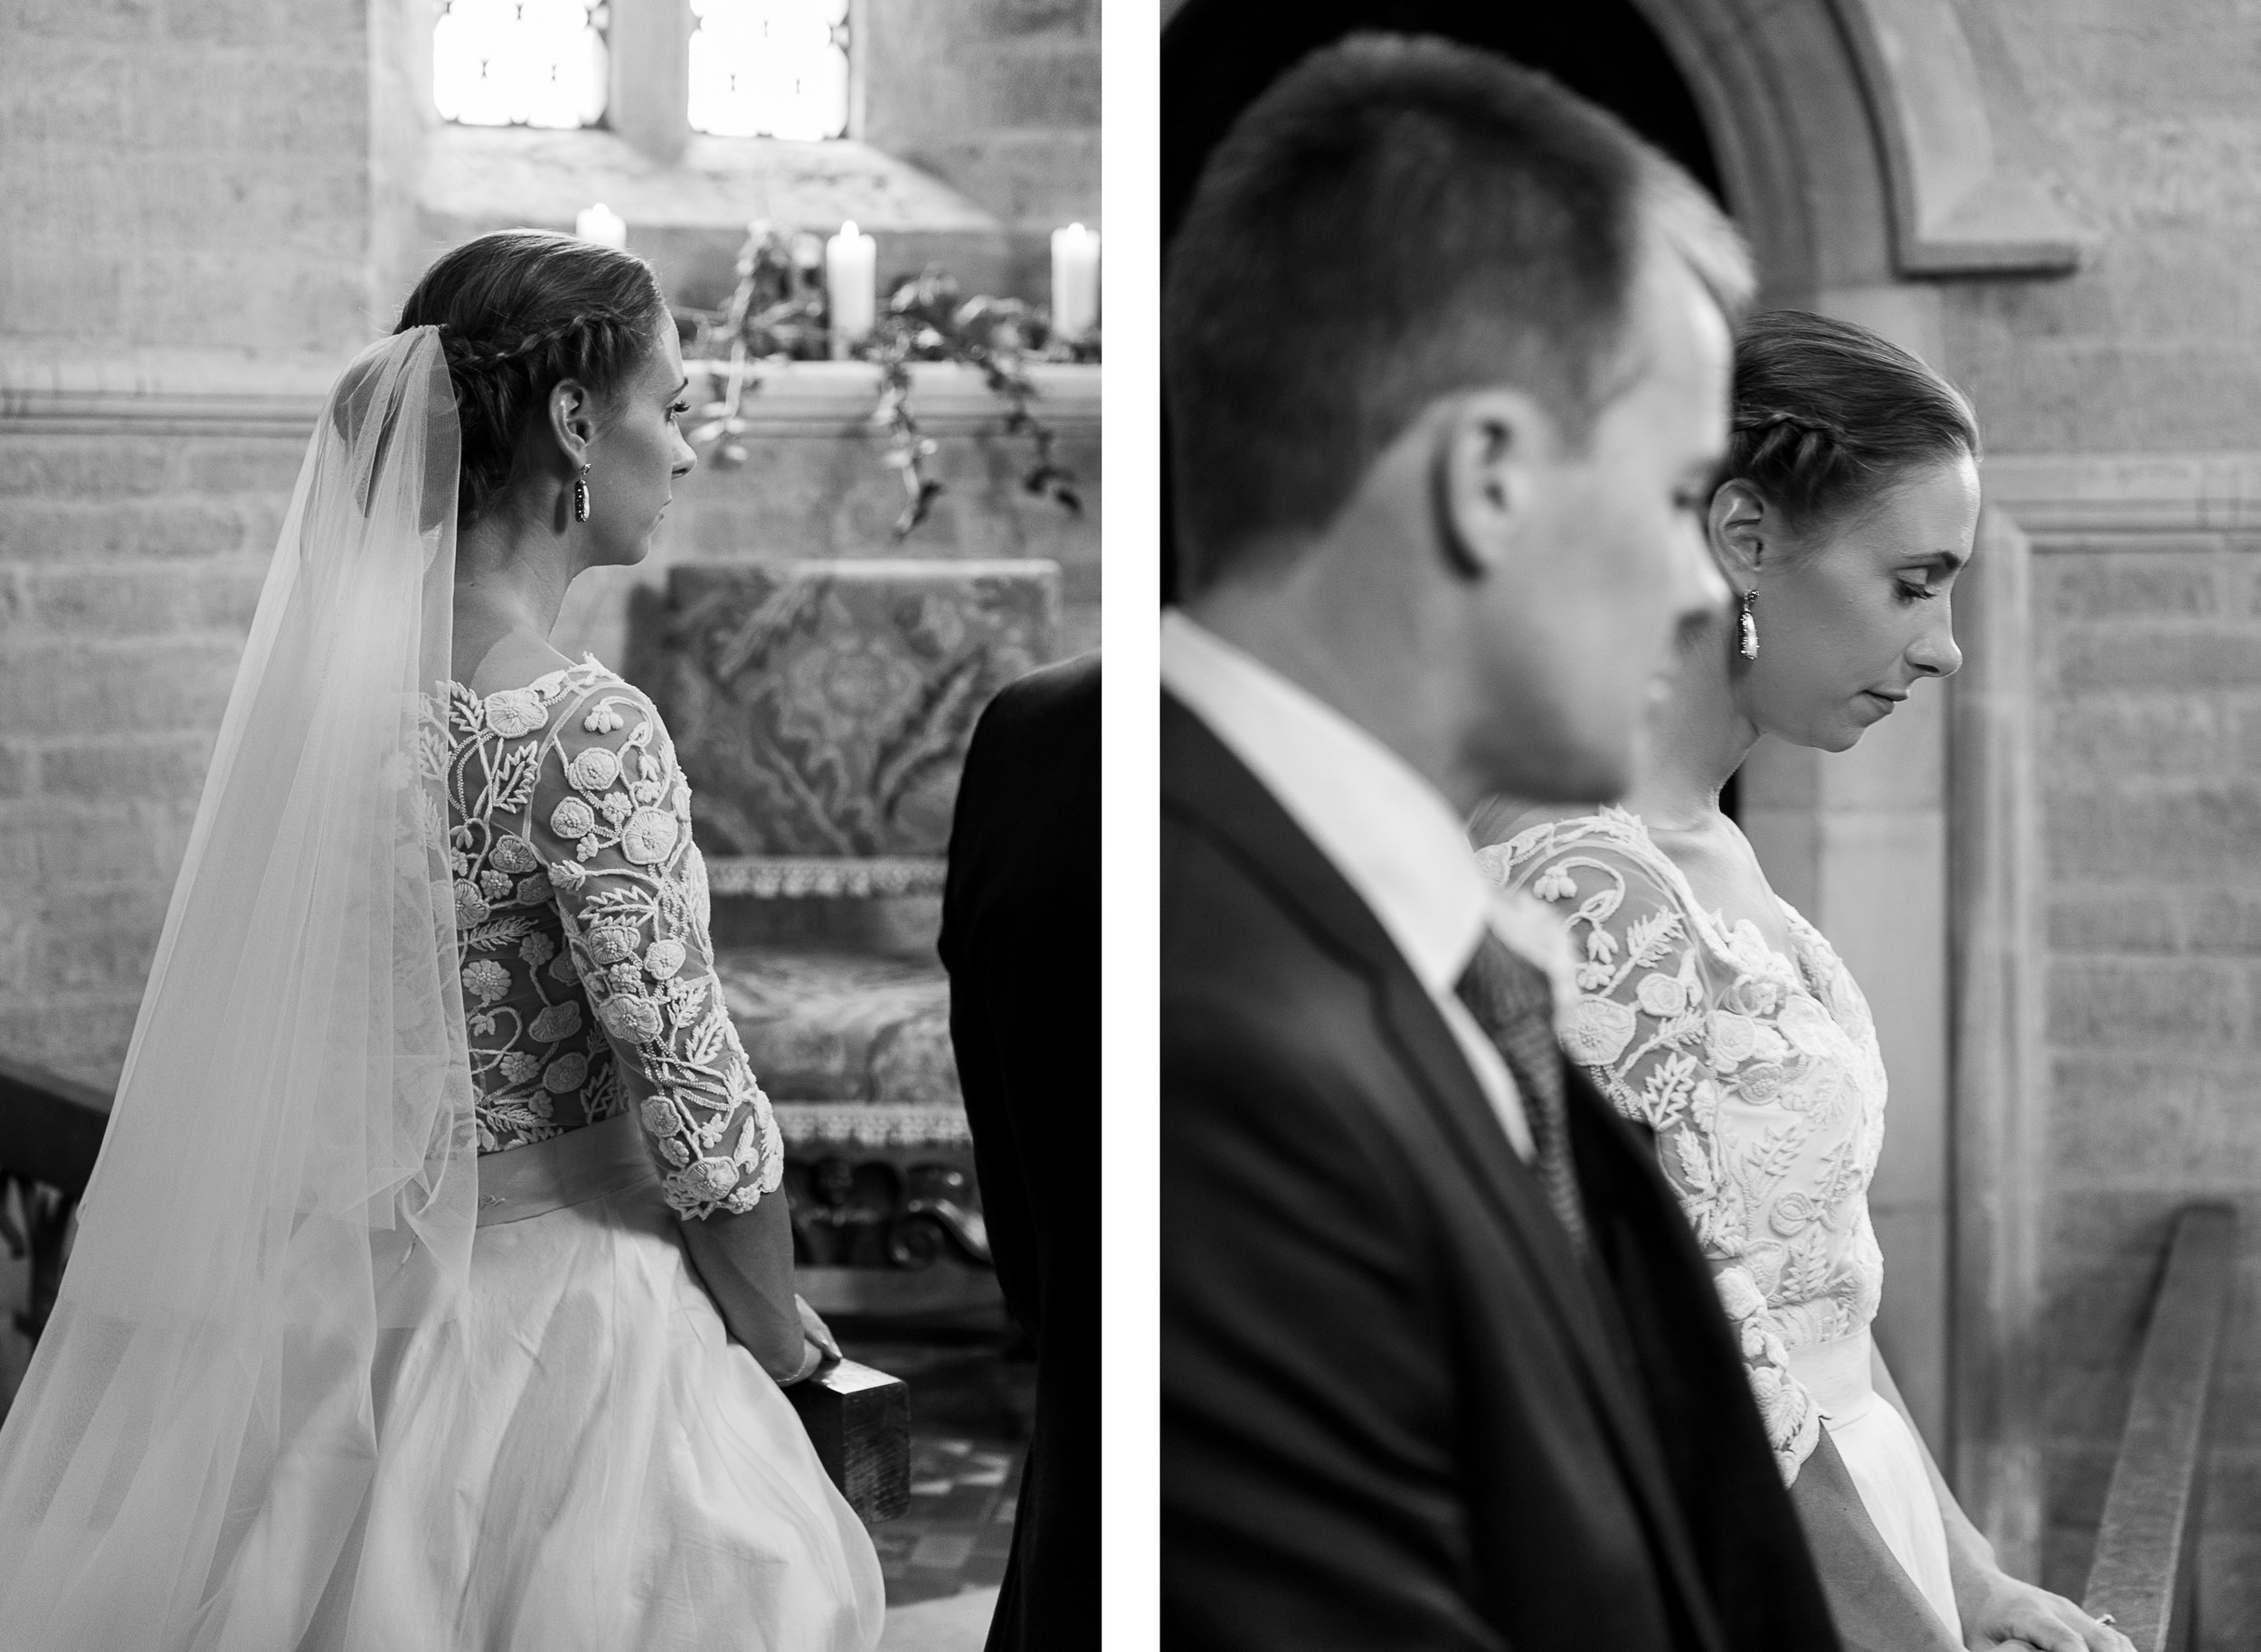 englland-farthingstone-wedding-farthingstone-church-ceremony.jpg